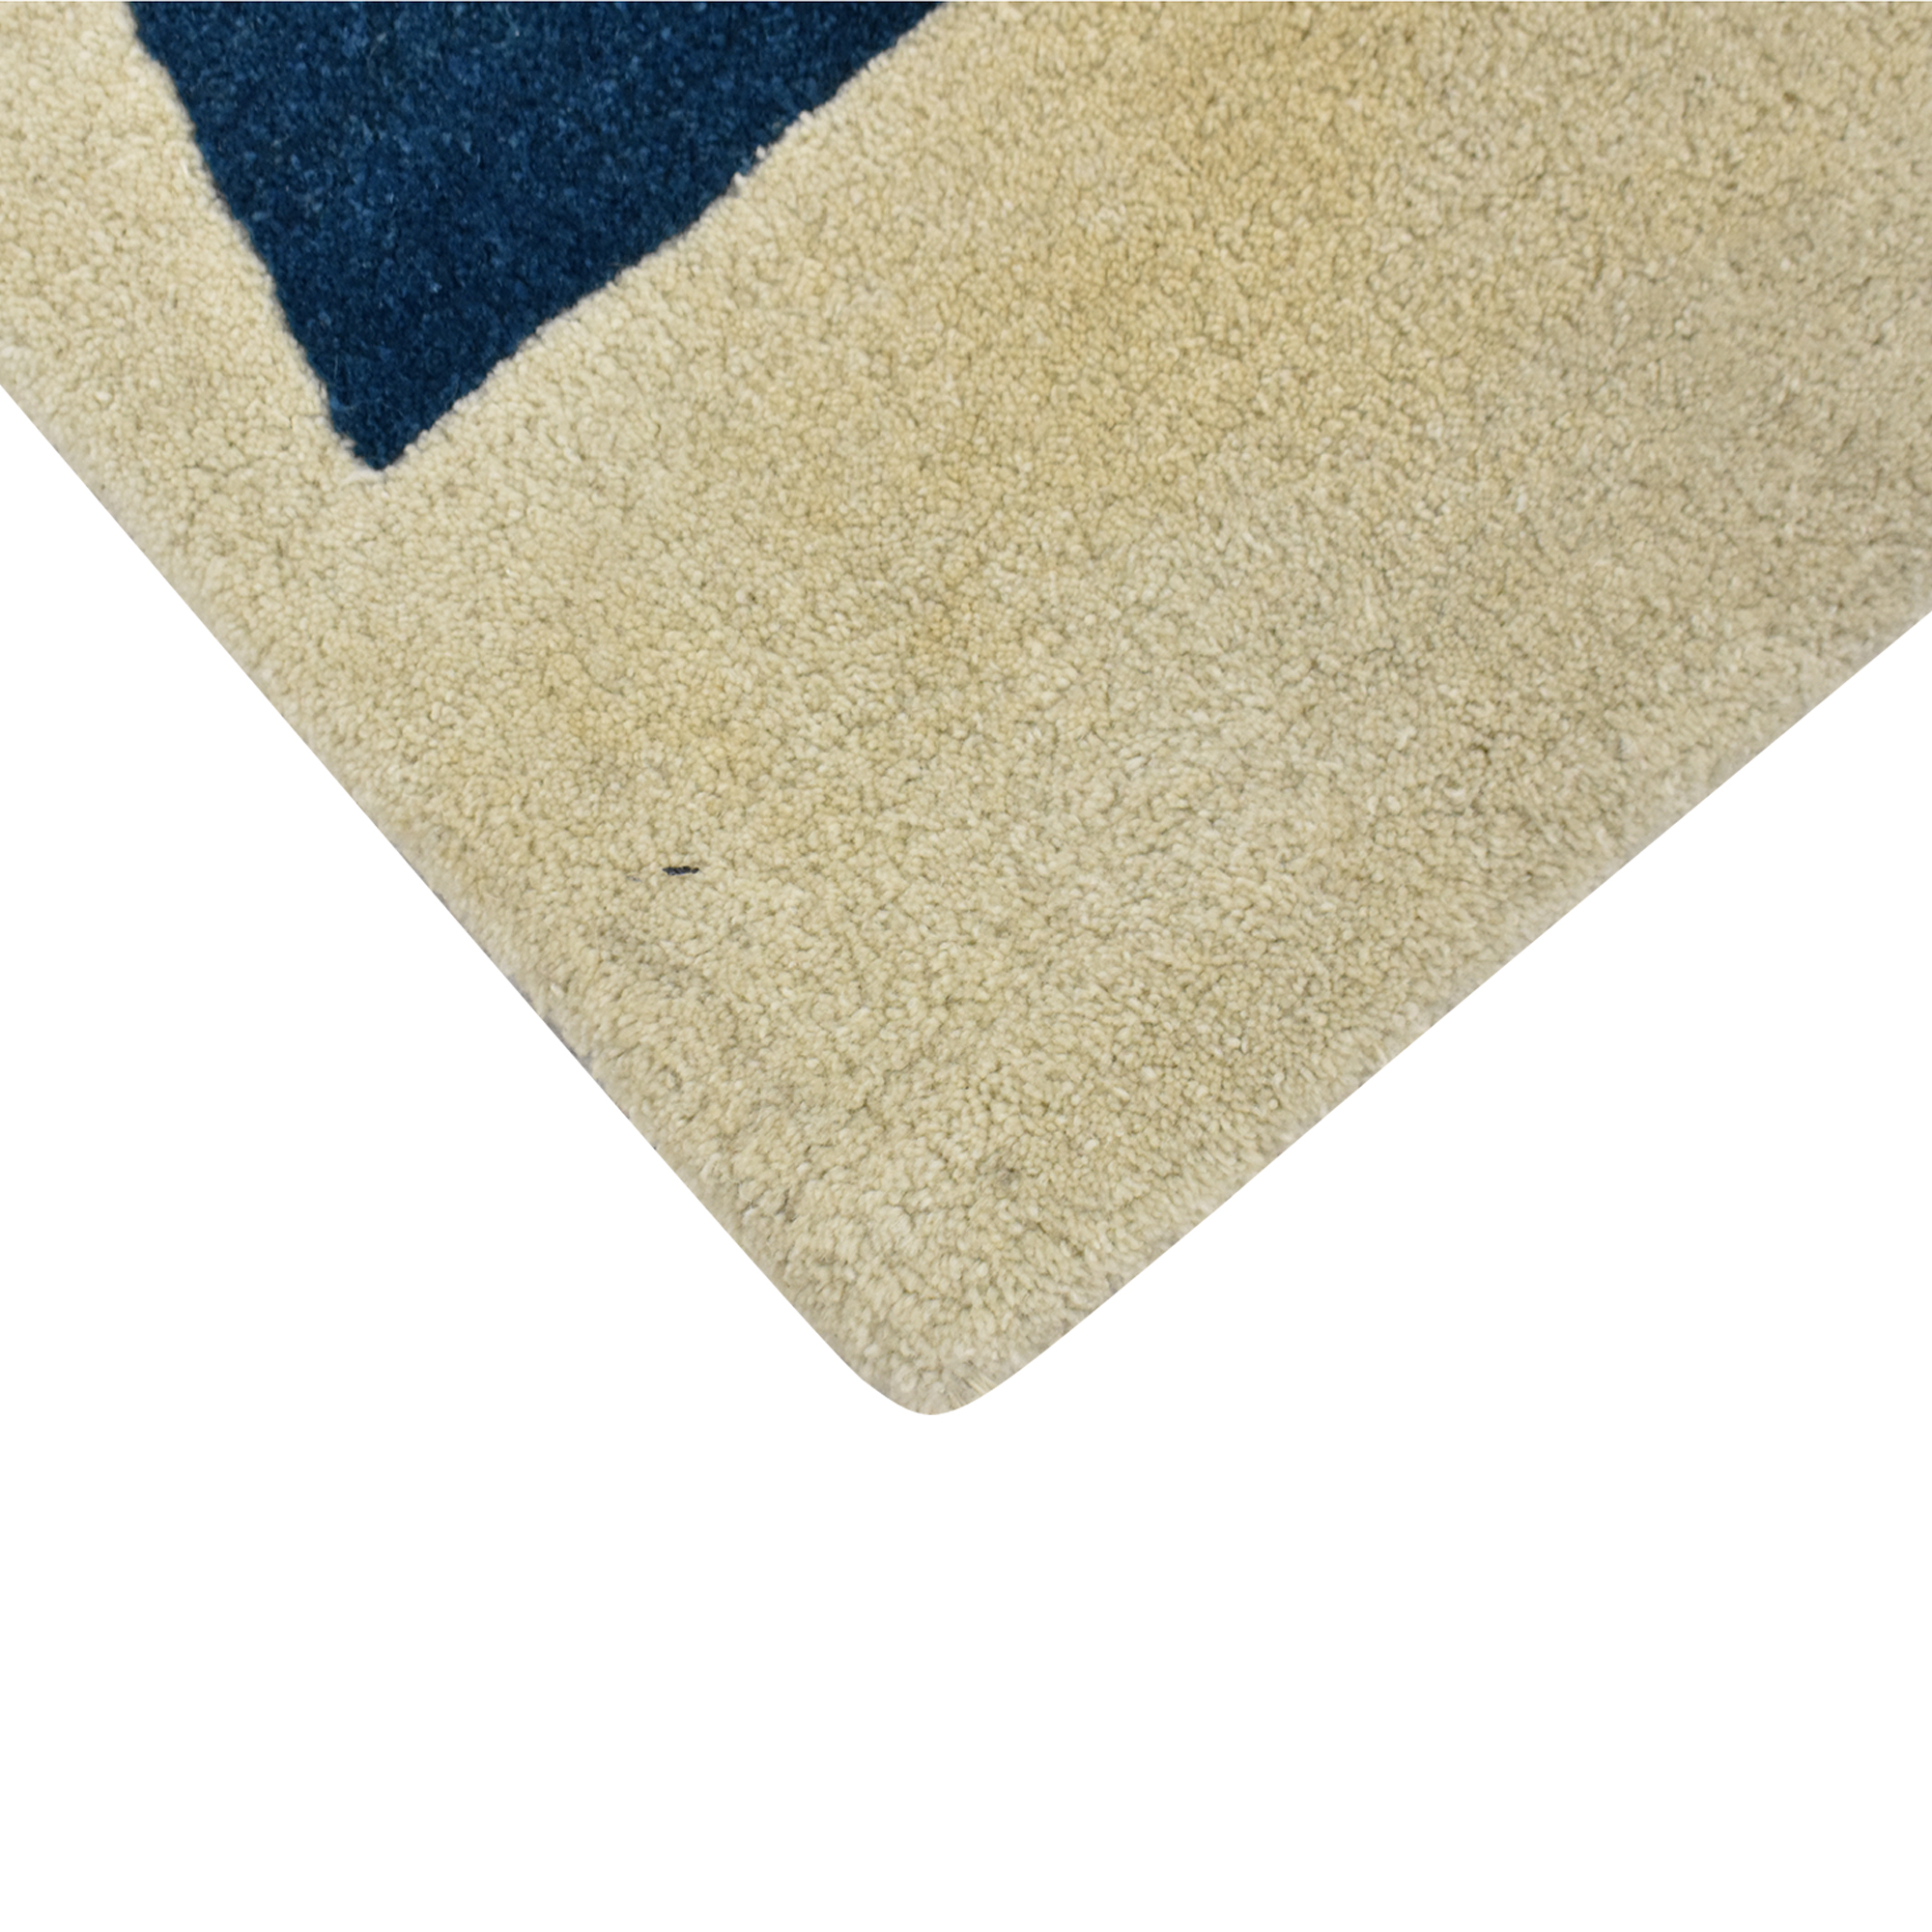 Crate & Barrel Crate & Barrel Joplin Multi Rug ct